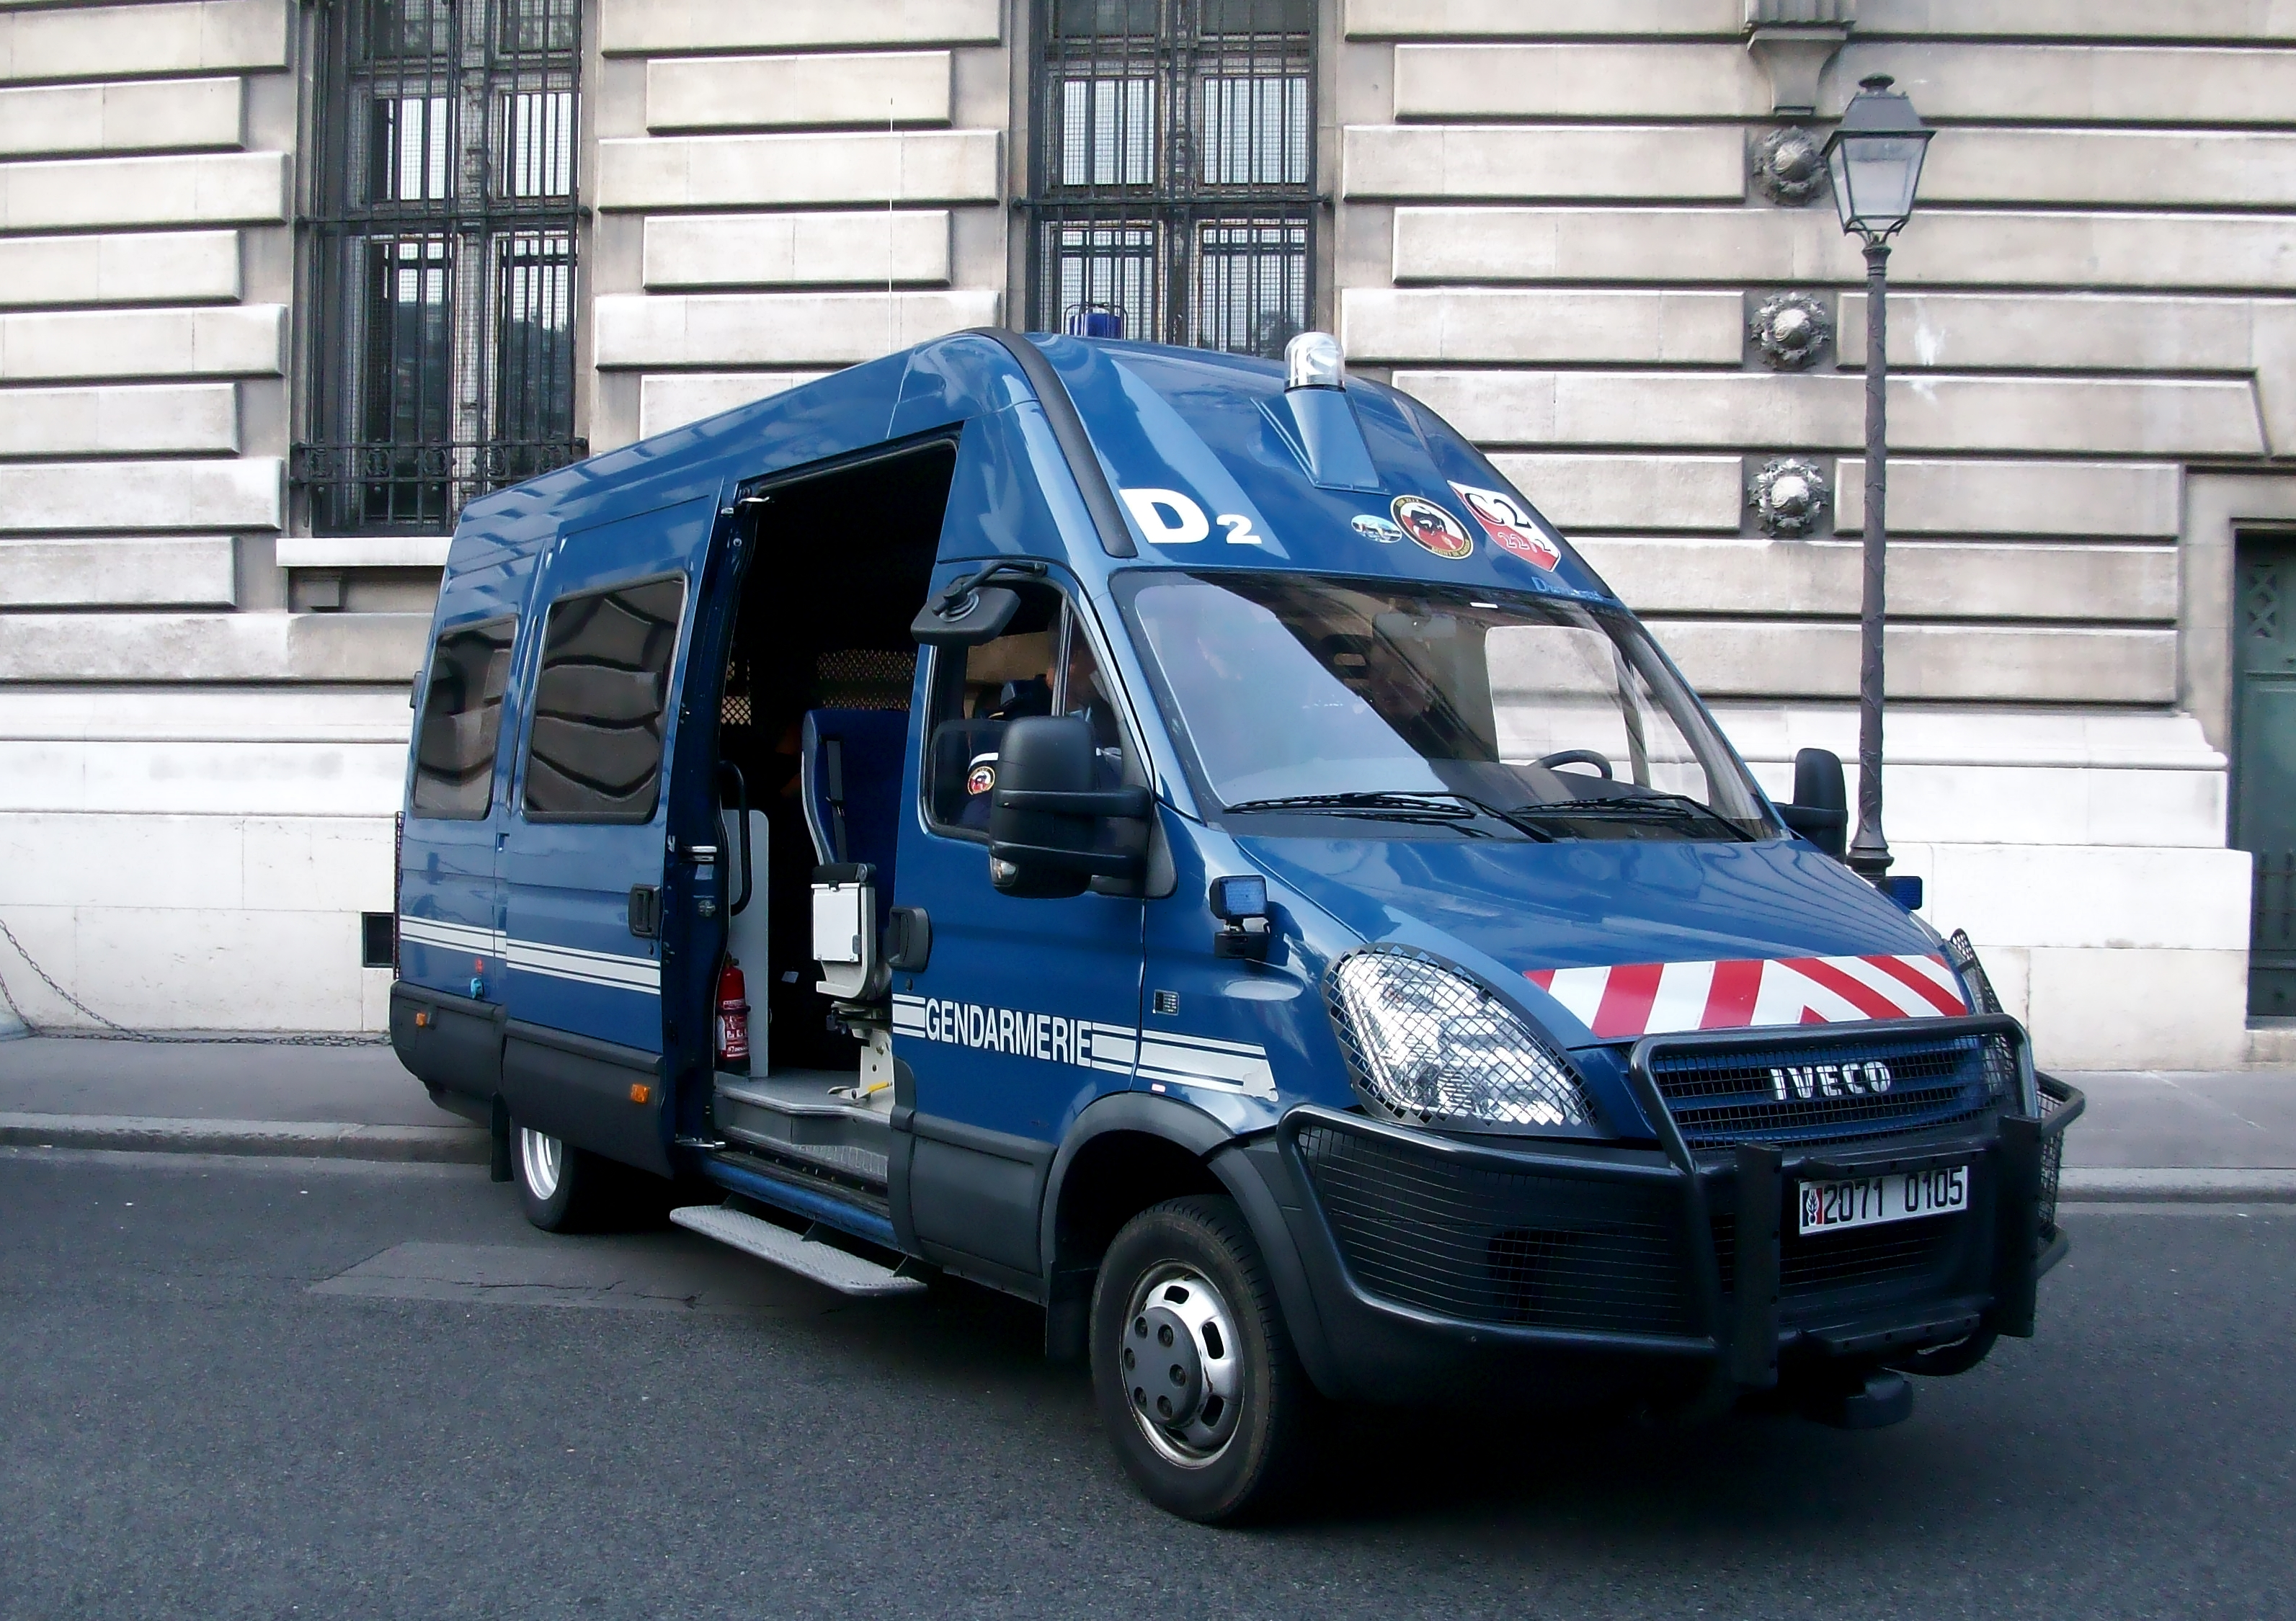 file iveco daily 2006 gendarmerie mobile septembre 2013 paris jpg wikimedia commons. Black Bedroom Furniture Sets. Home Design Ideas